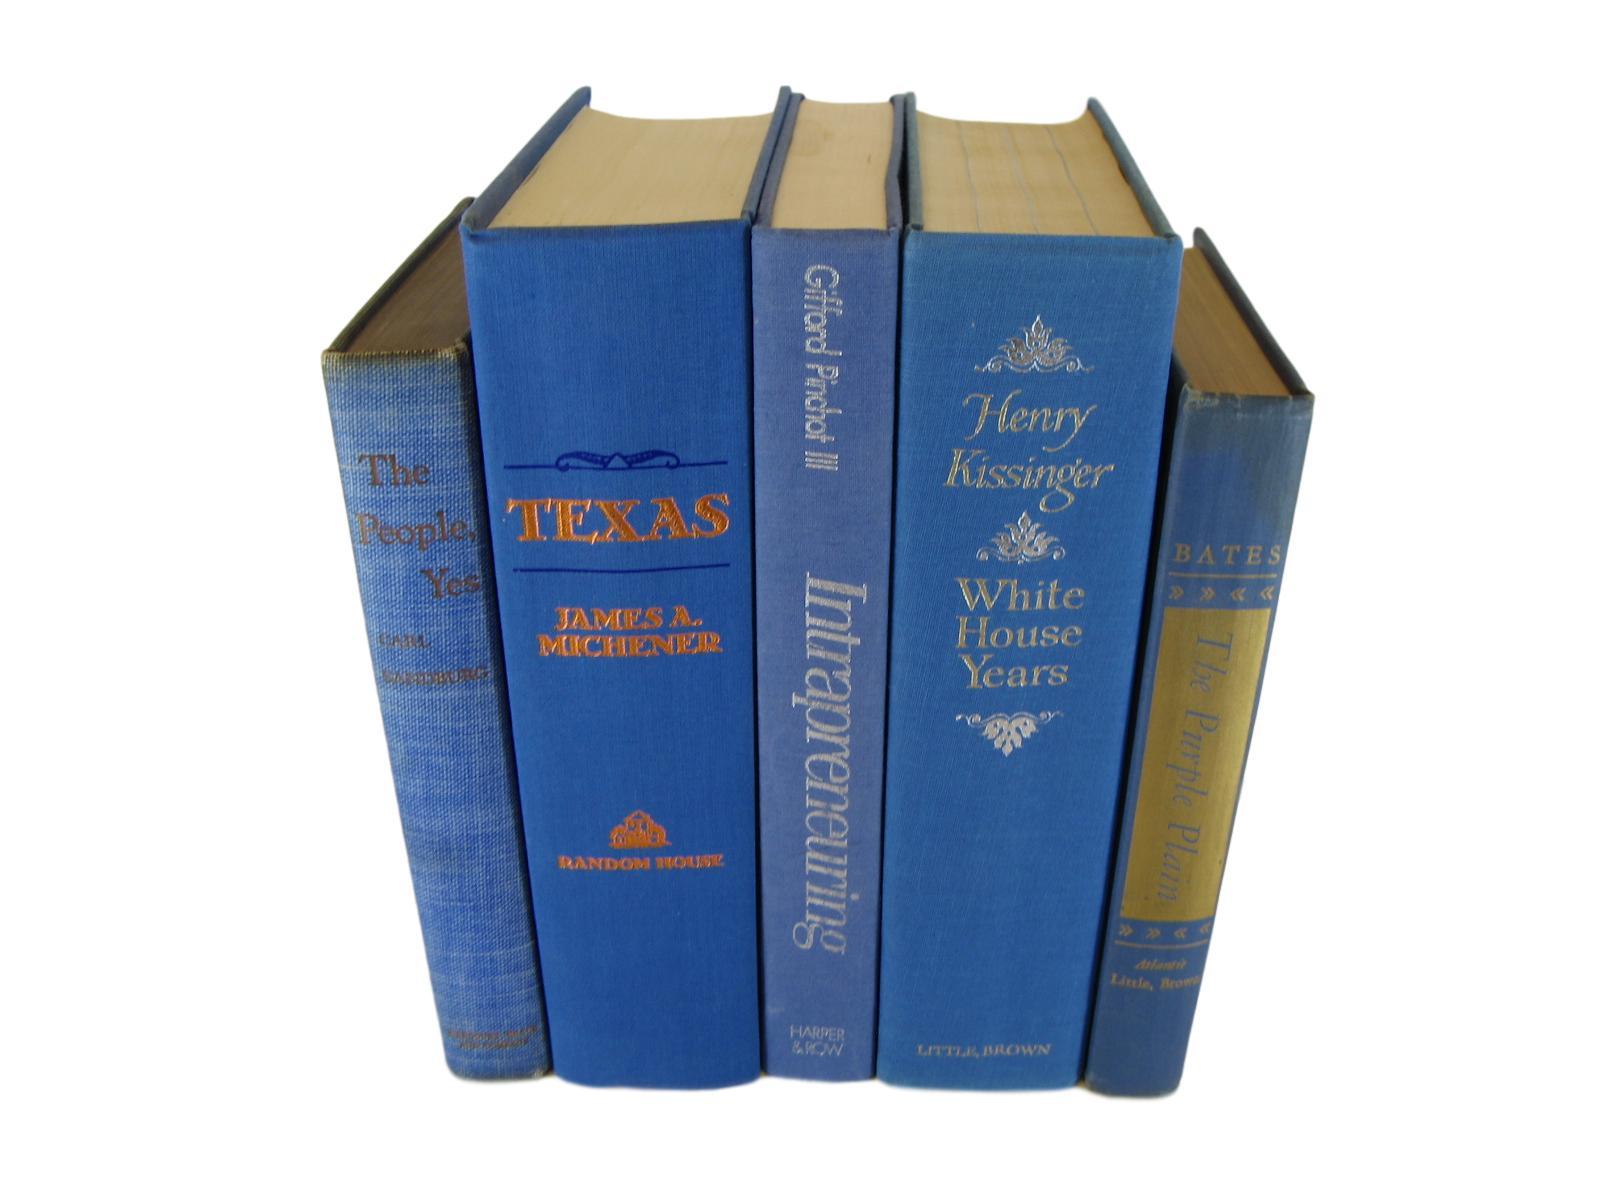 Blue  Decorative Books by Color for Bookshelf Decor, S/5 - Decades of Vintage